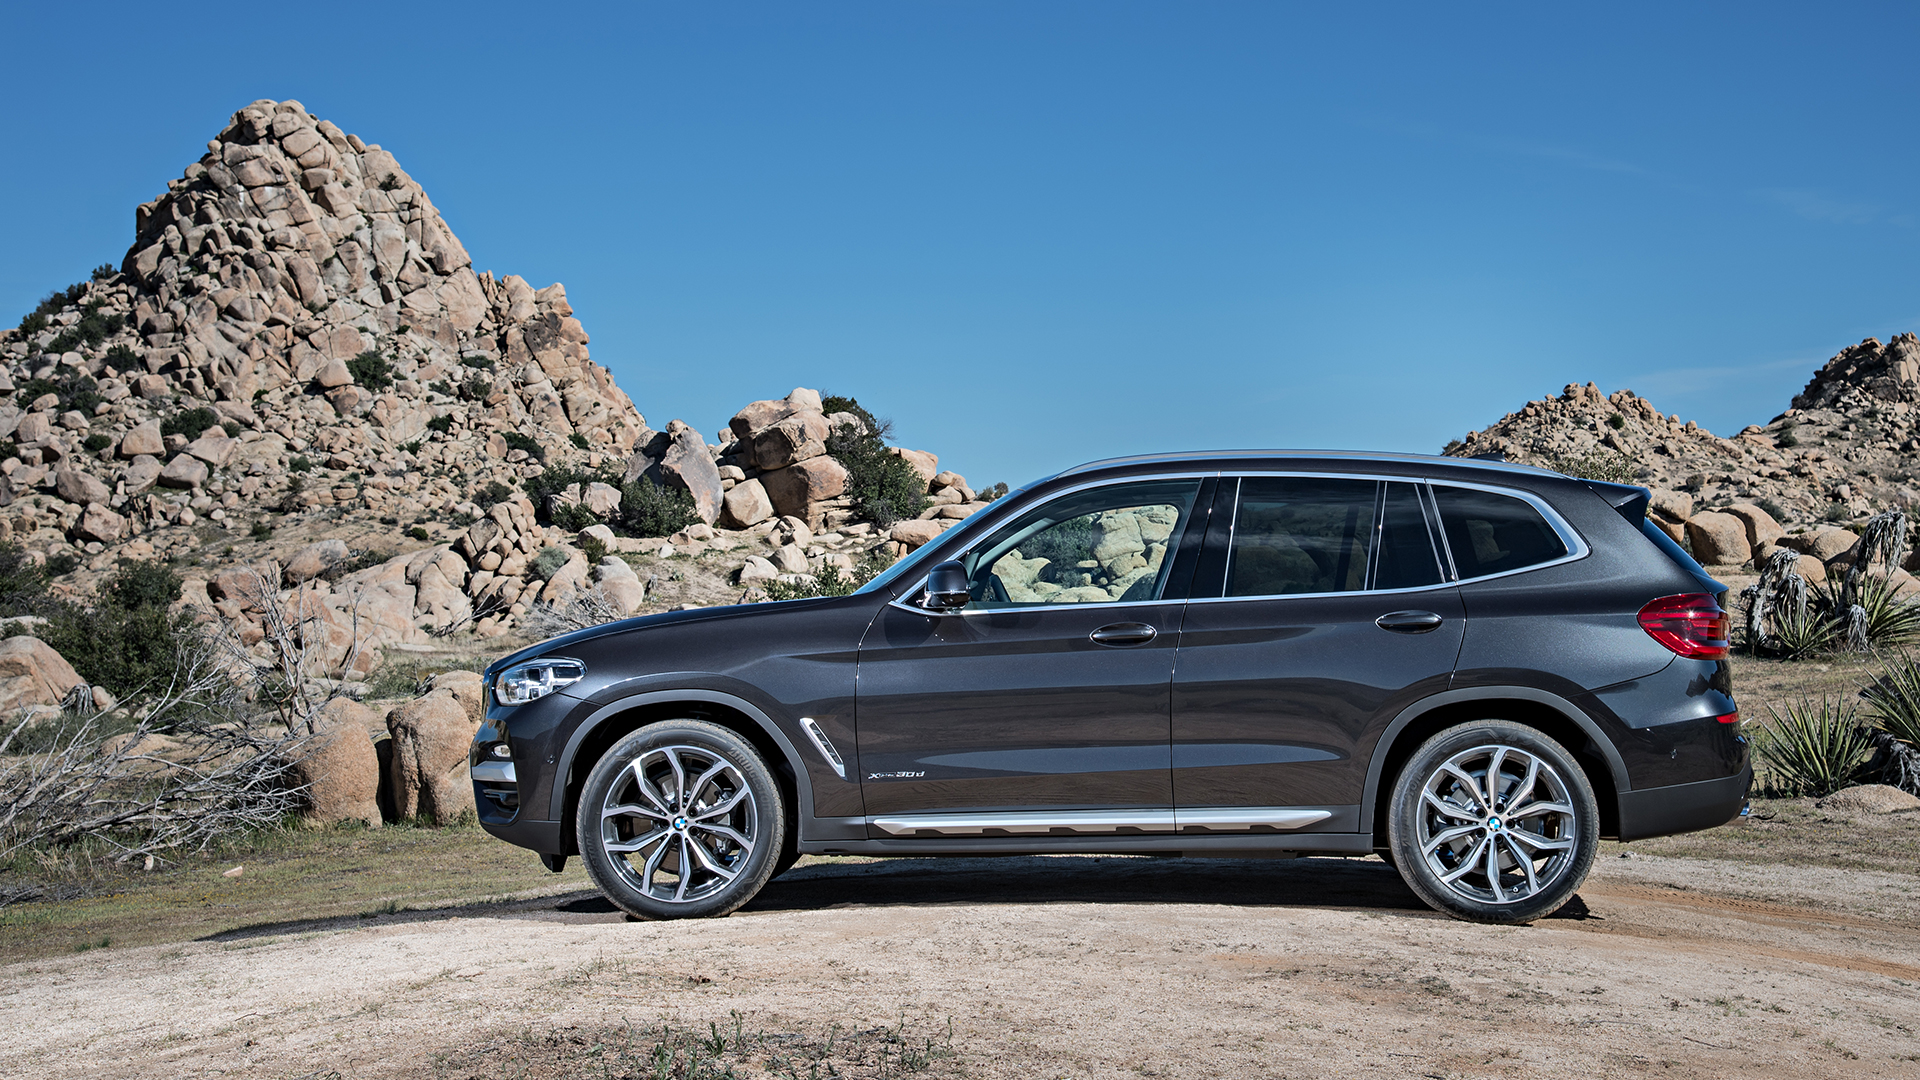 Bmw X3 2018 Price Mileage Reviews Specification